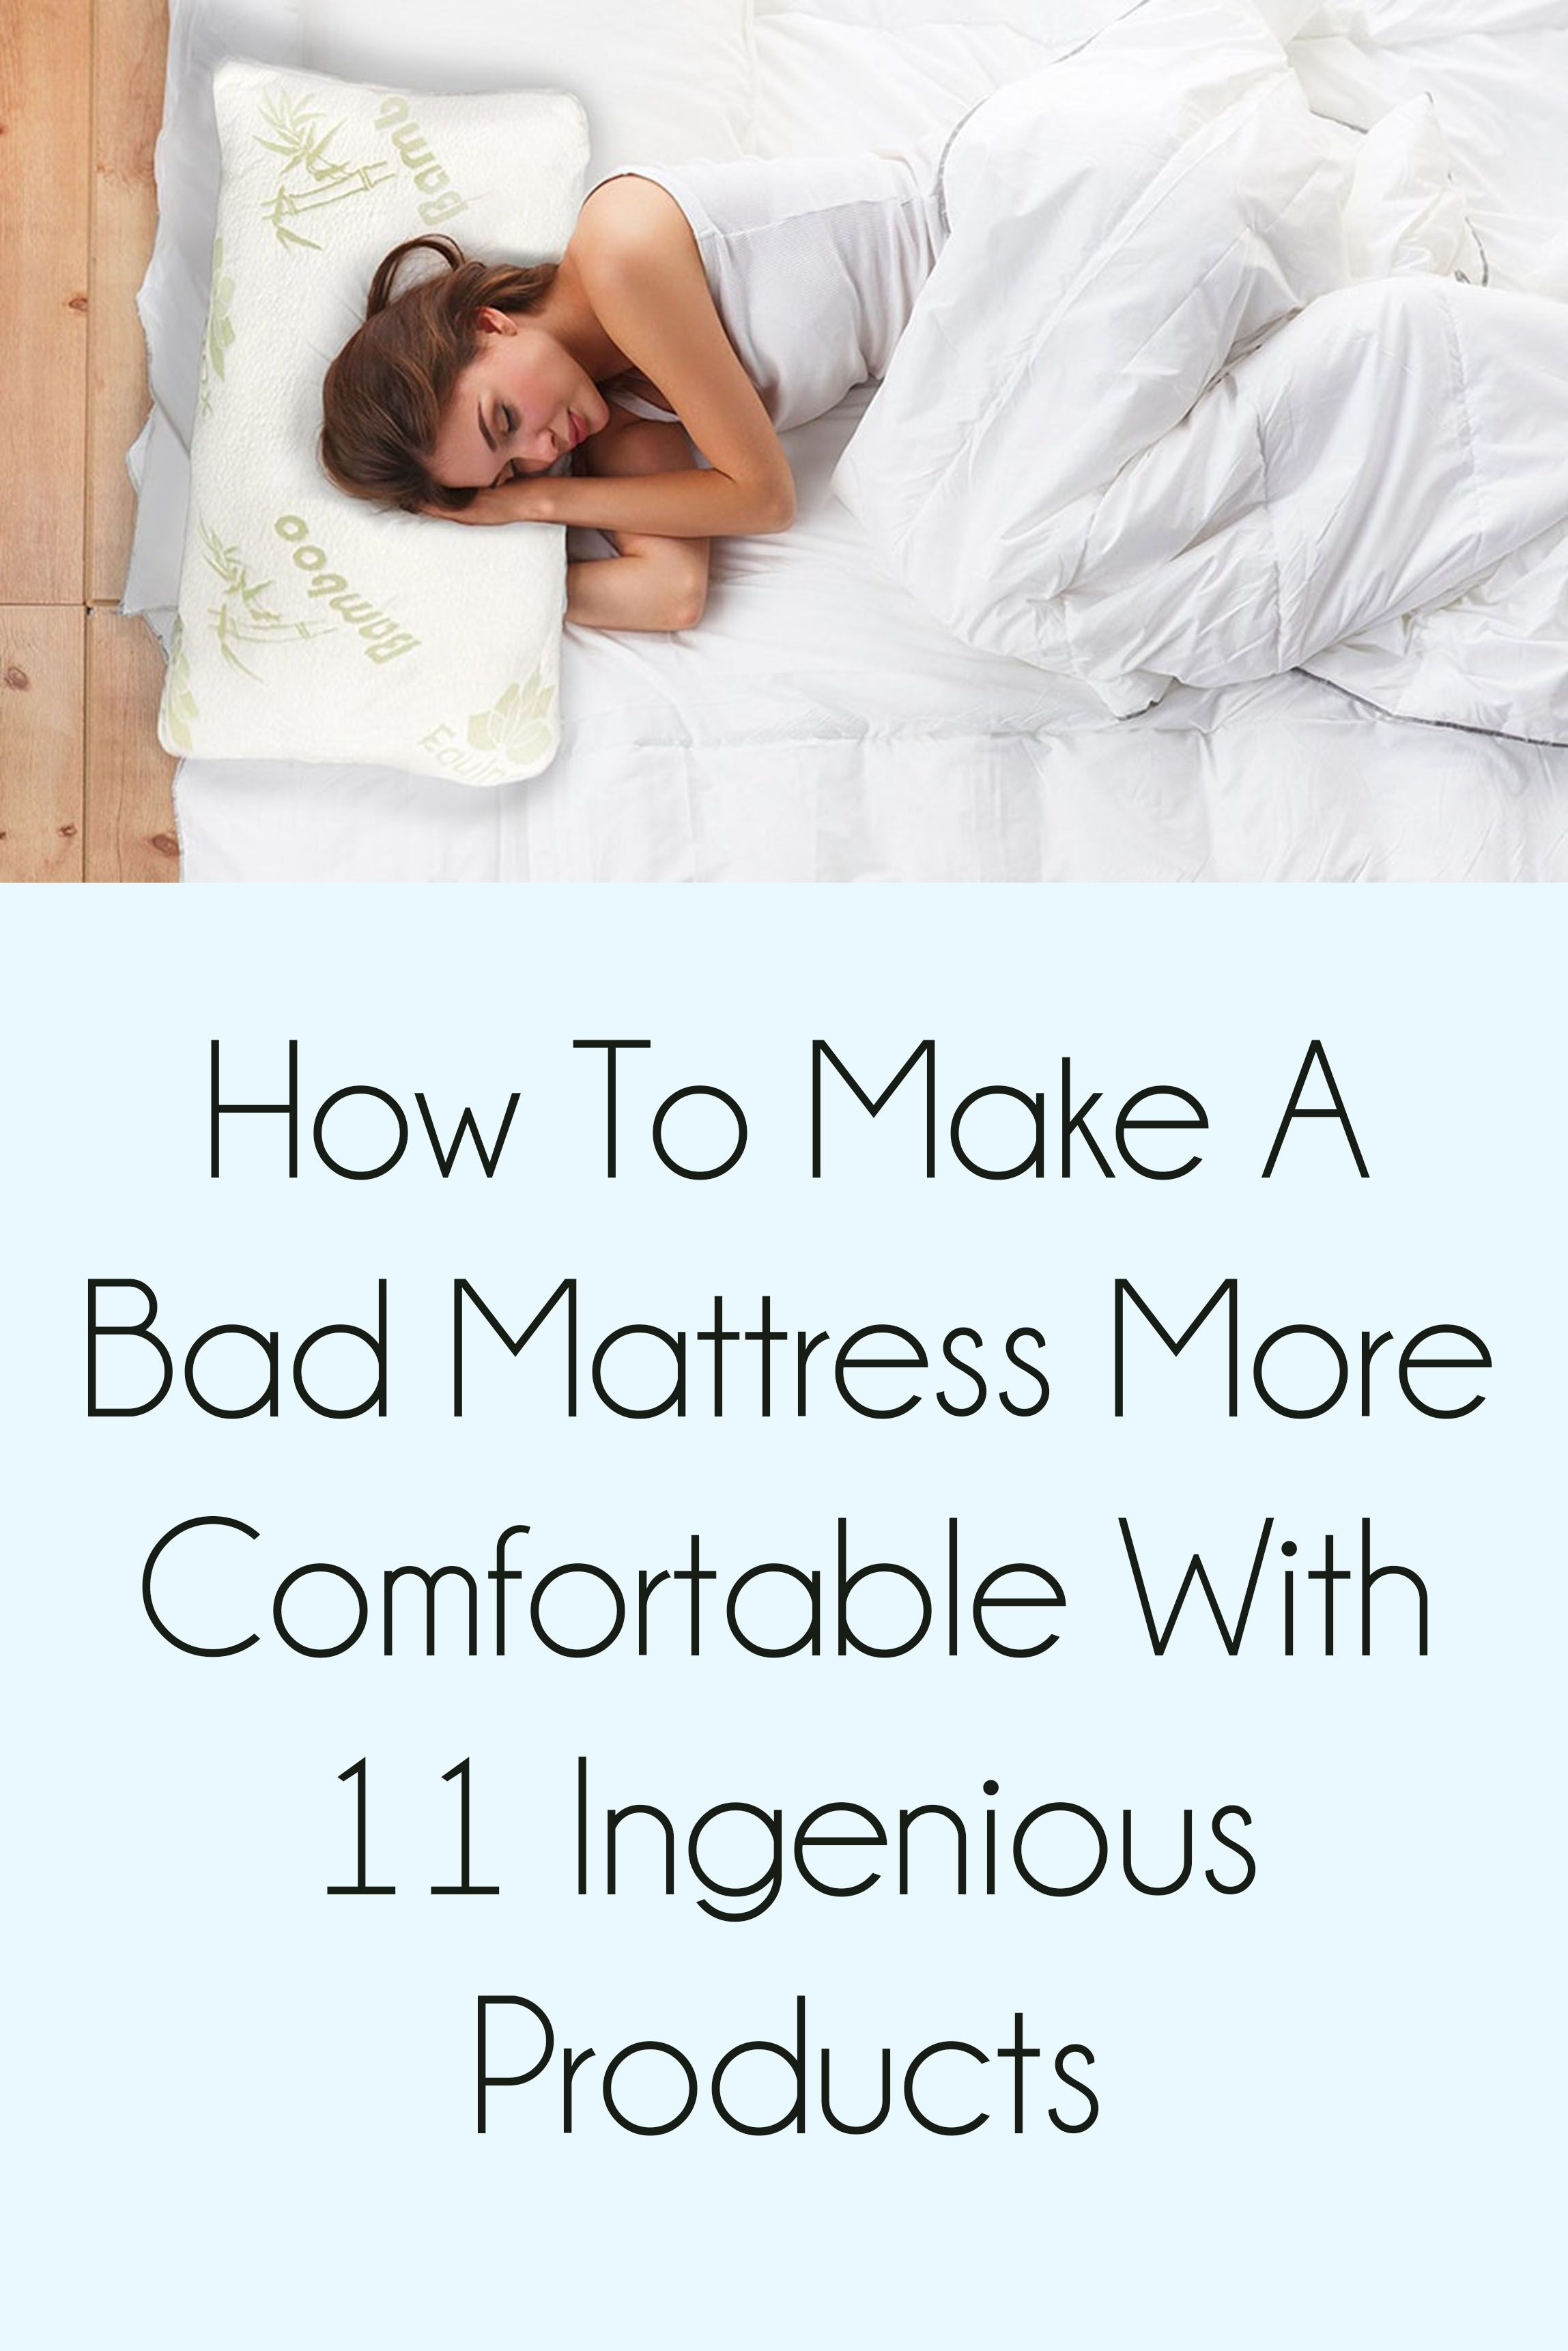 How To Make A Bad Mattress More Comfortable With 11 Ingenious